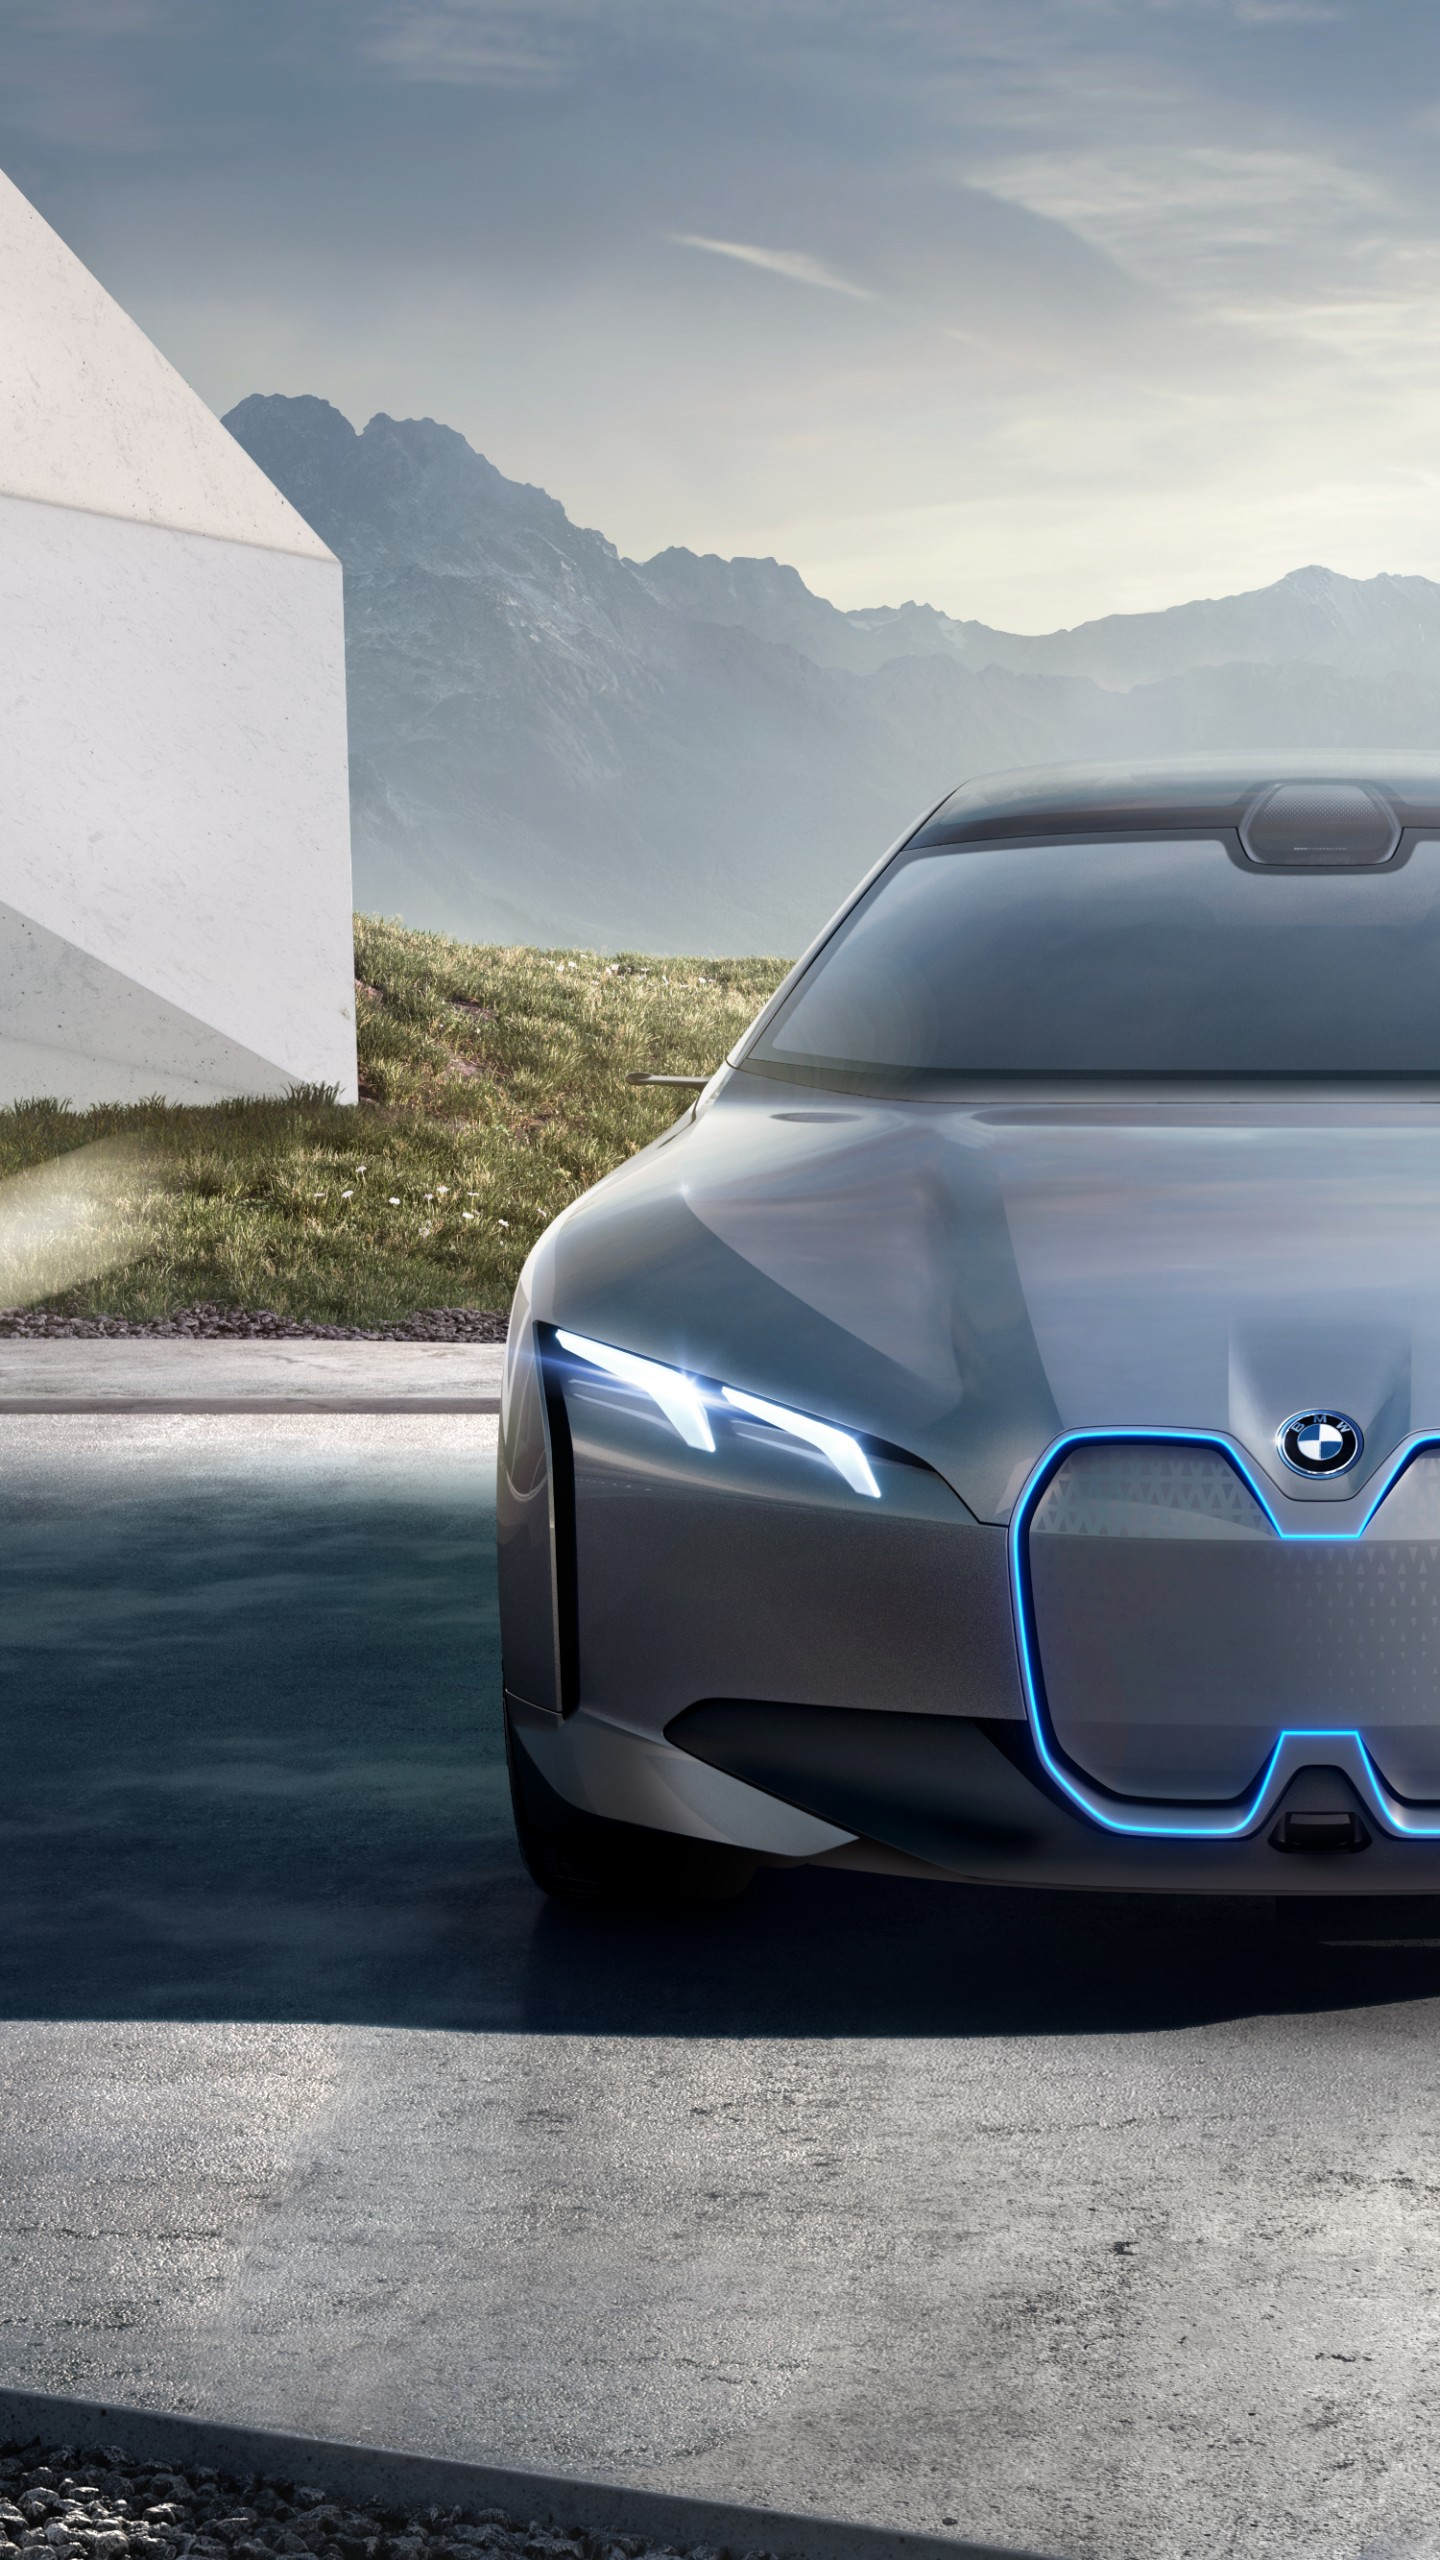 Bmw Luxury Cars Hd Wallpapers Wallpaper Bmw I4 Electric Cars 4k Cars Amp Bikes 20528